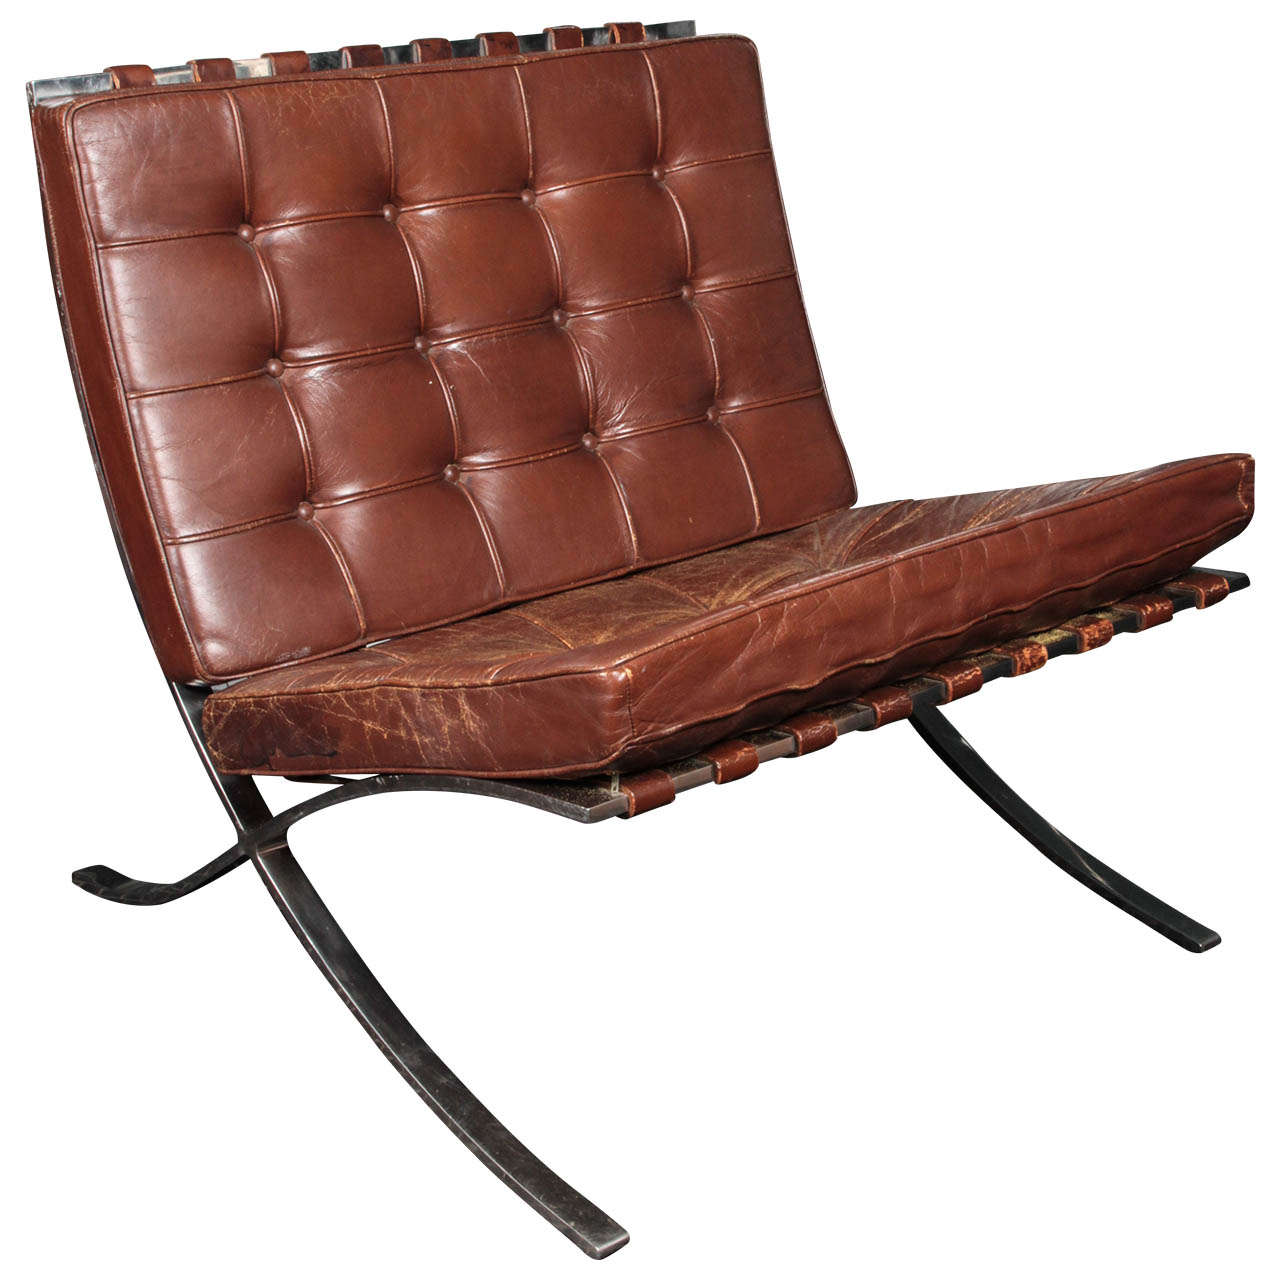 Barcelona Lounge Chair Brown Leather Barcelona Chair By Ludwig Mies Van Der Rohe